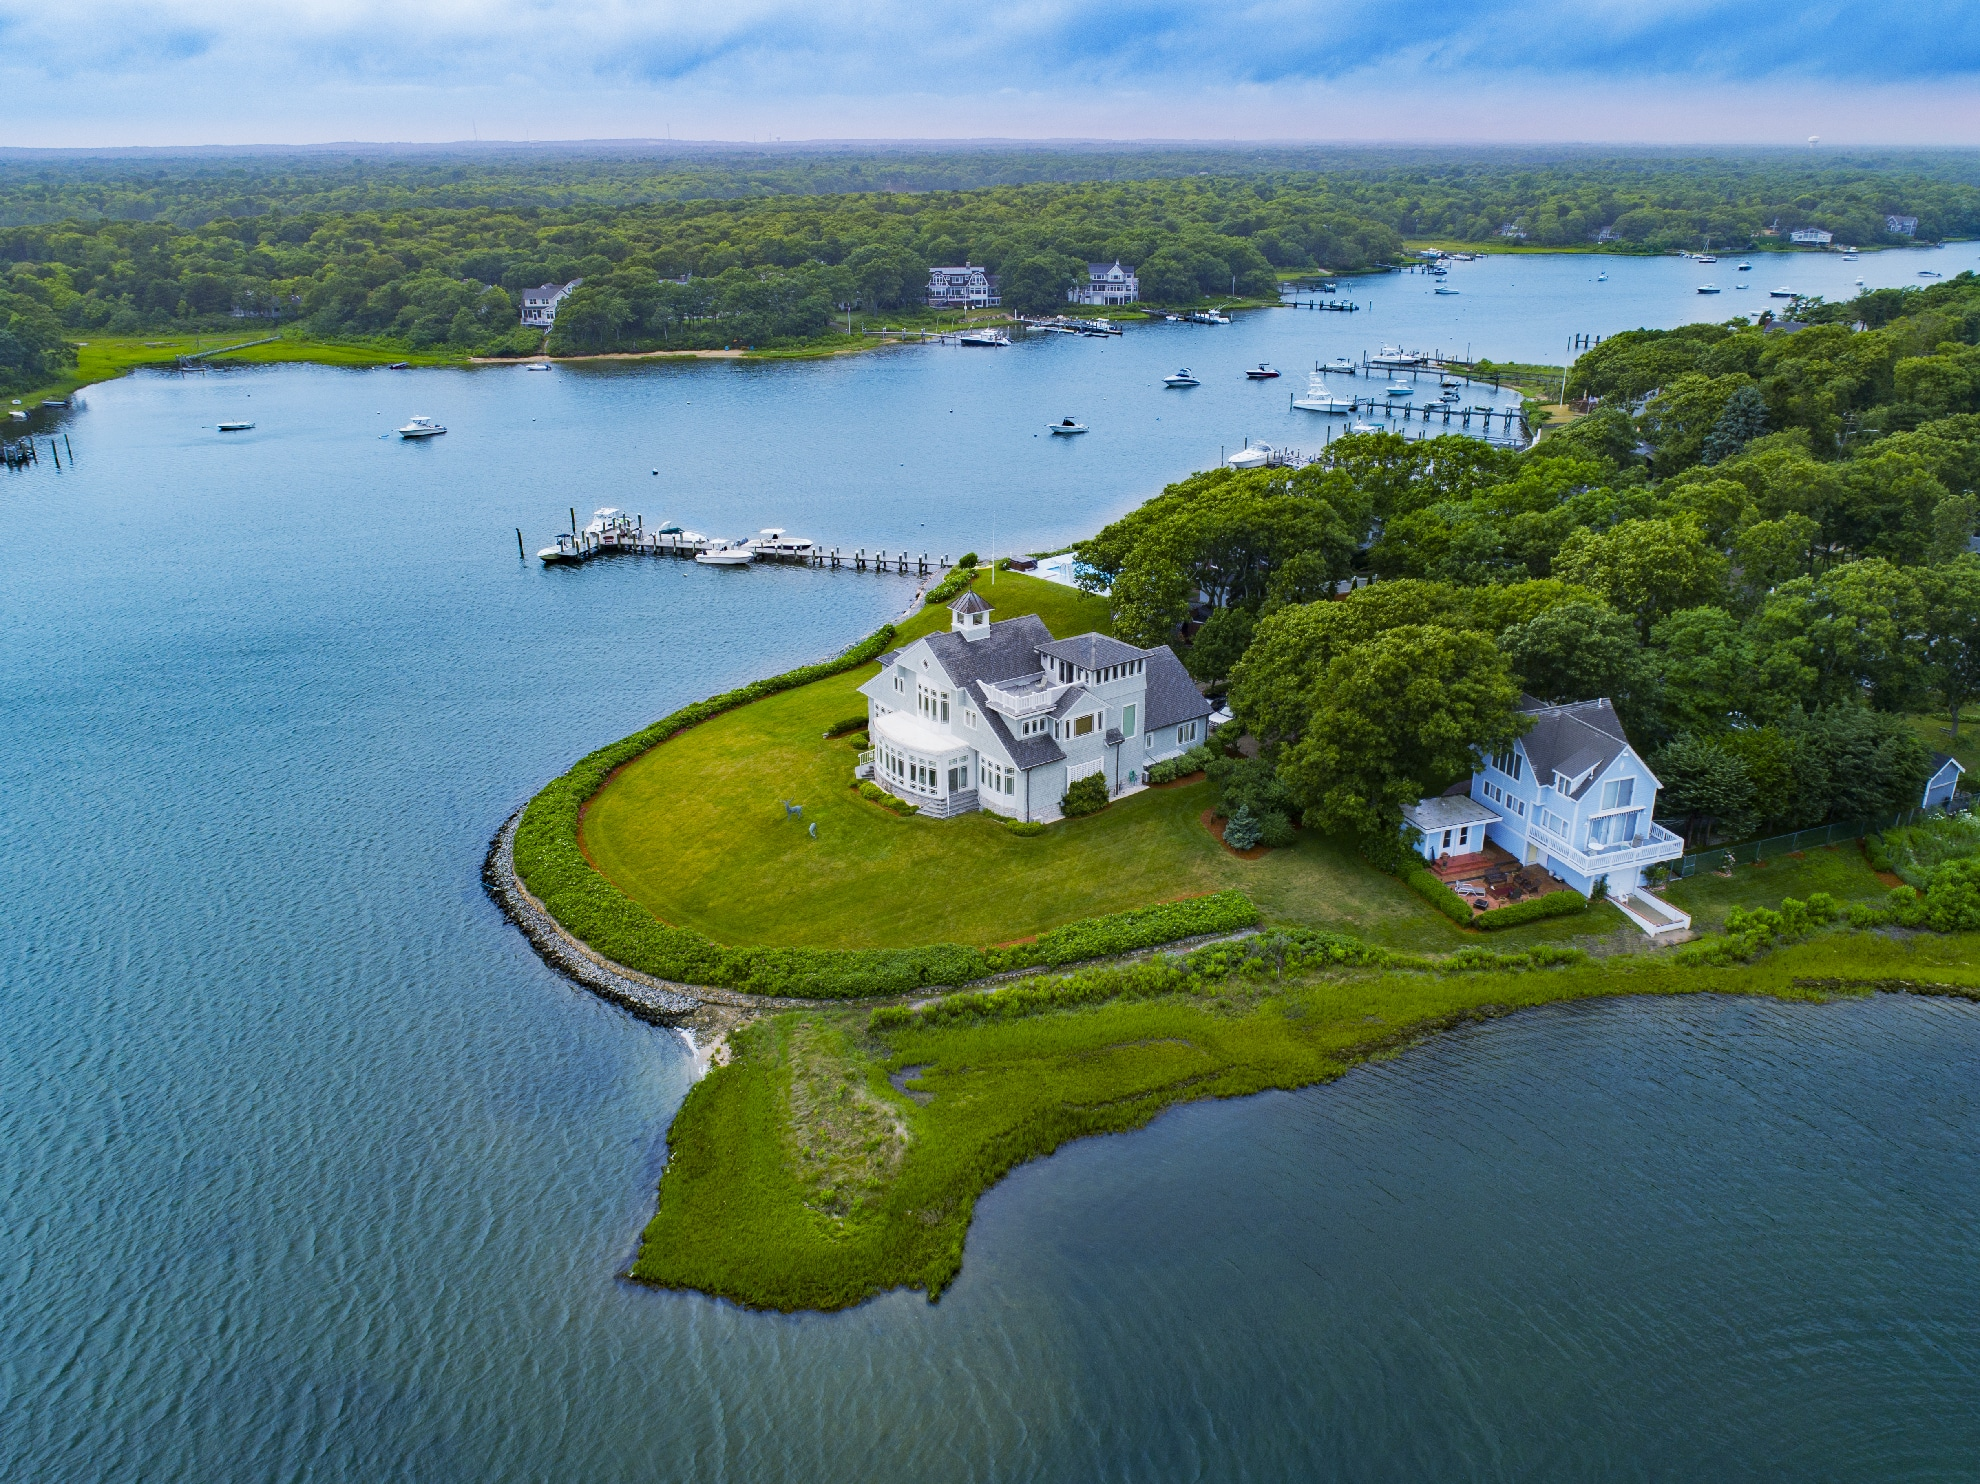 Drone Photograph of Home on Falmouth Point Massachusetts